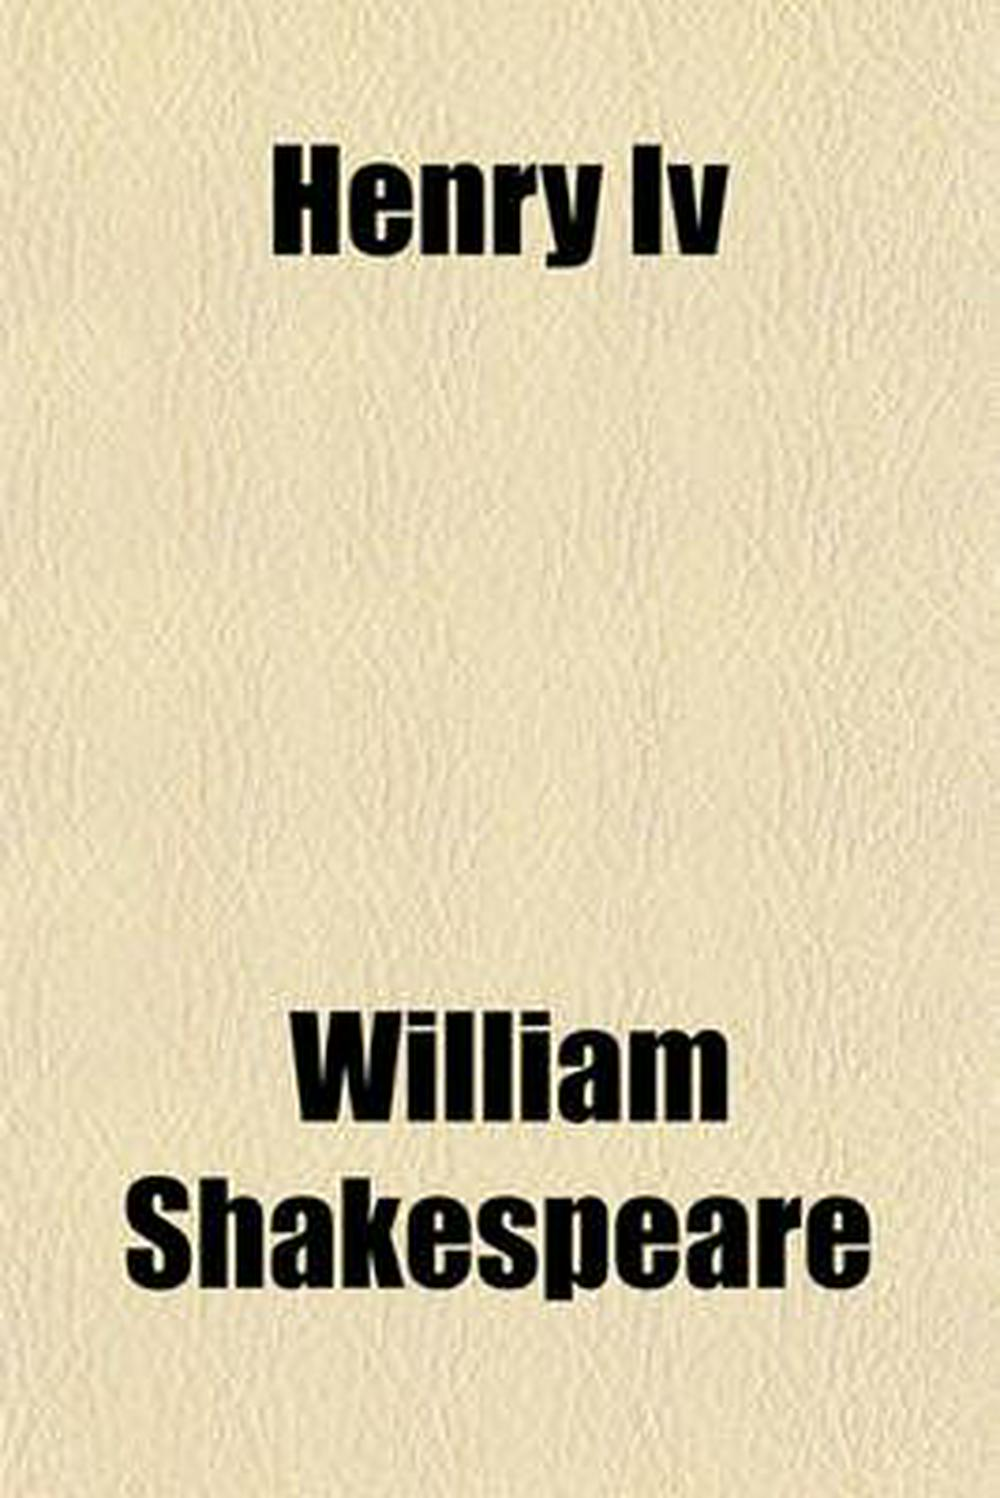 an analysis of henry 4 by william shakespeare Literature section includes brief analyses of characters, themes and plots henry iv, part 1 is a history play by william shakespeare, believed an analysis of henry 4 part one by william shakespeare to have been written no later than 1597.